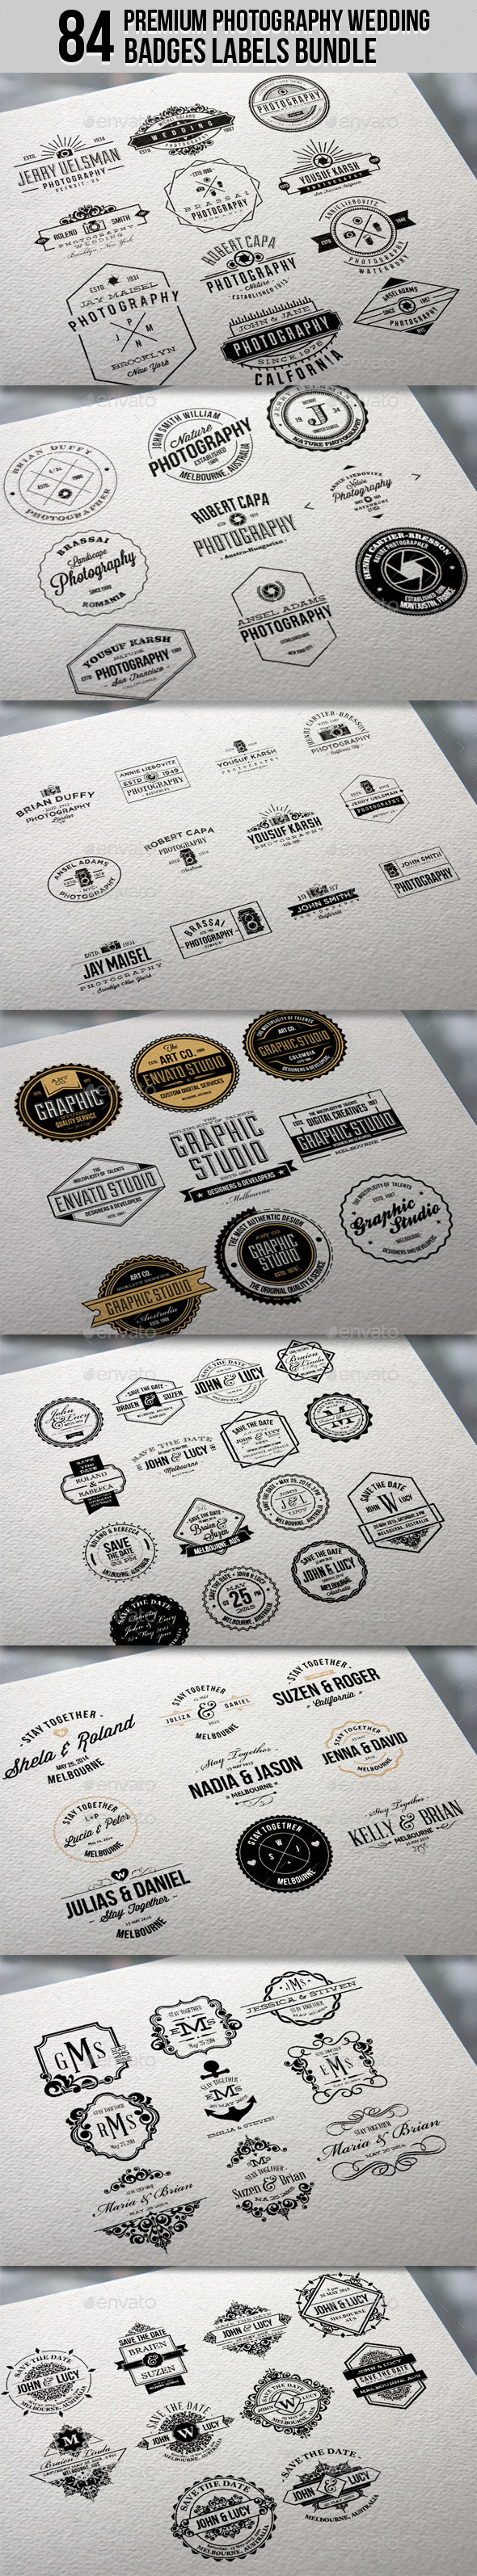 GraphicRiver 84 Premium Photography Wedding Badge Labels Bundle 11405454